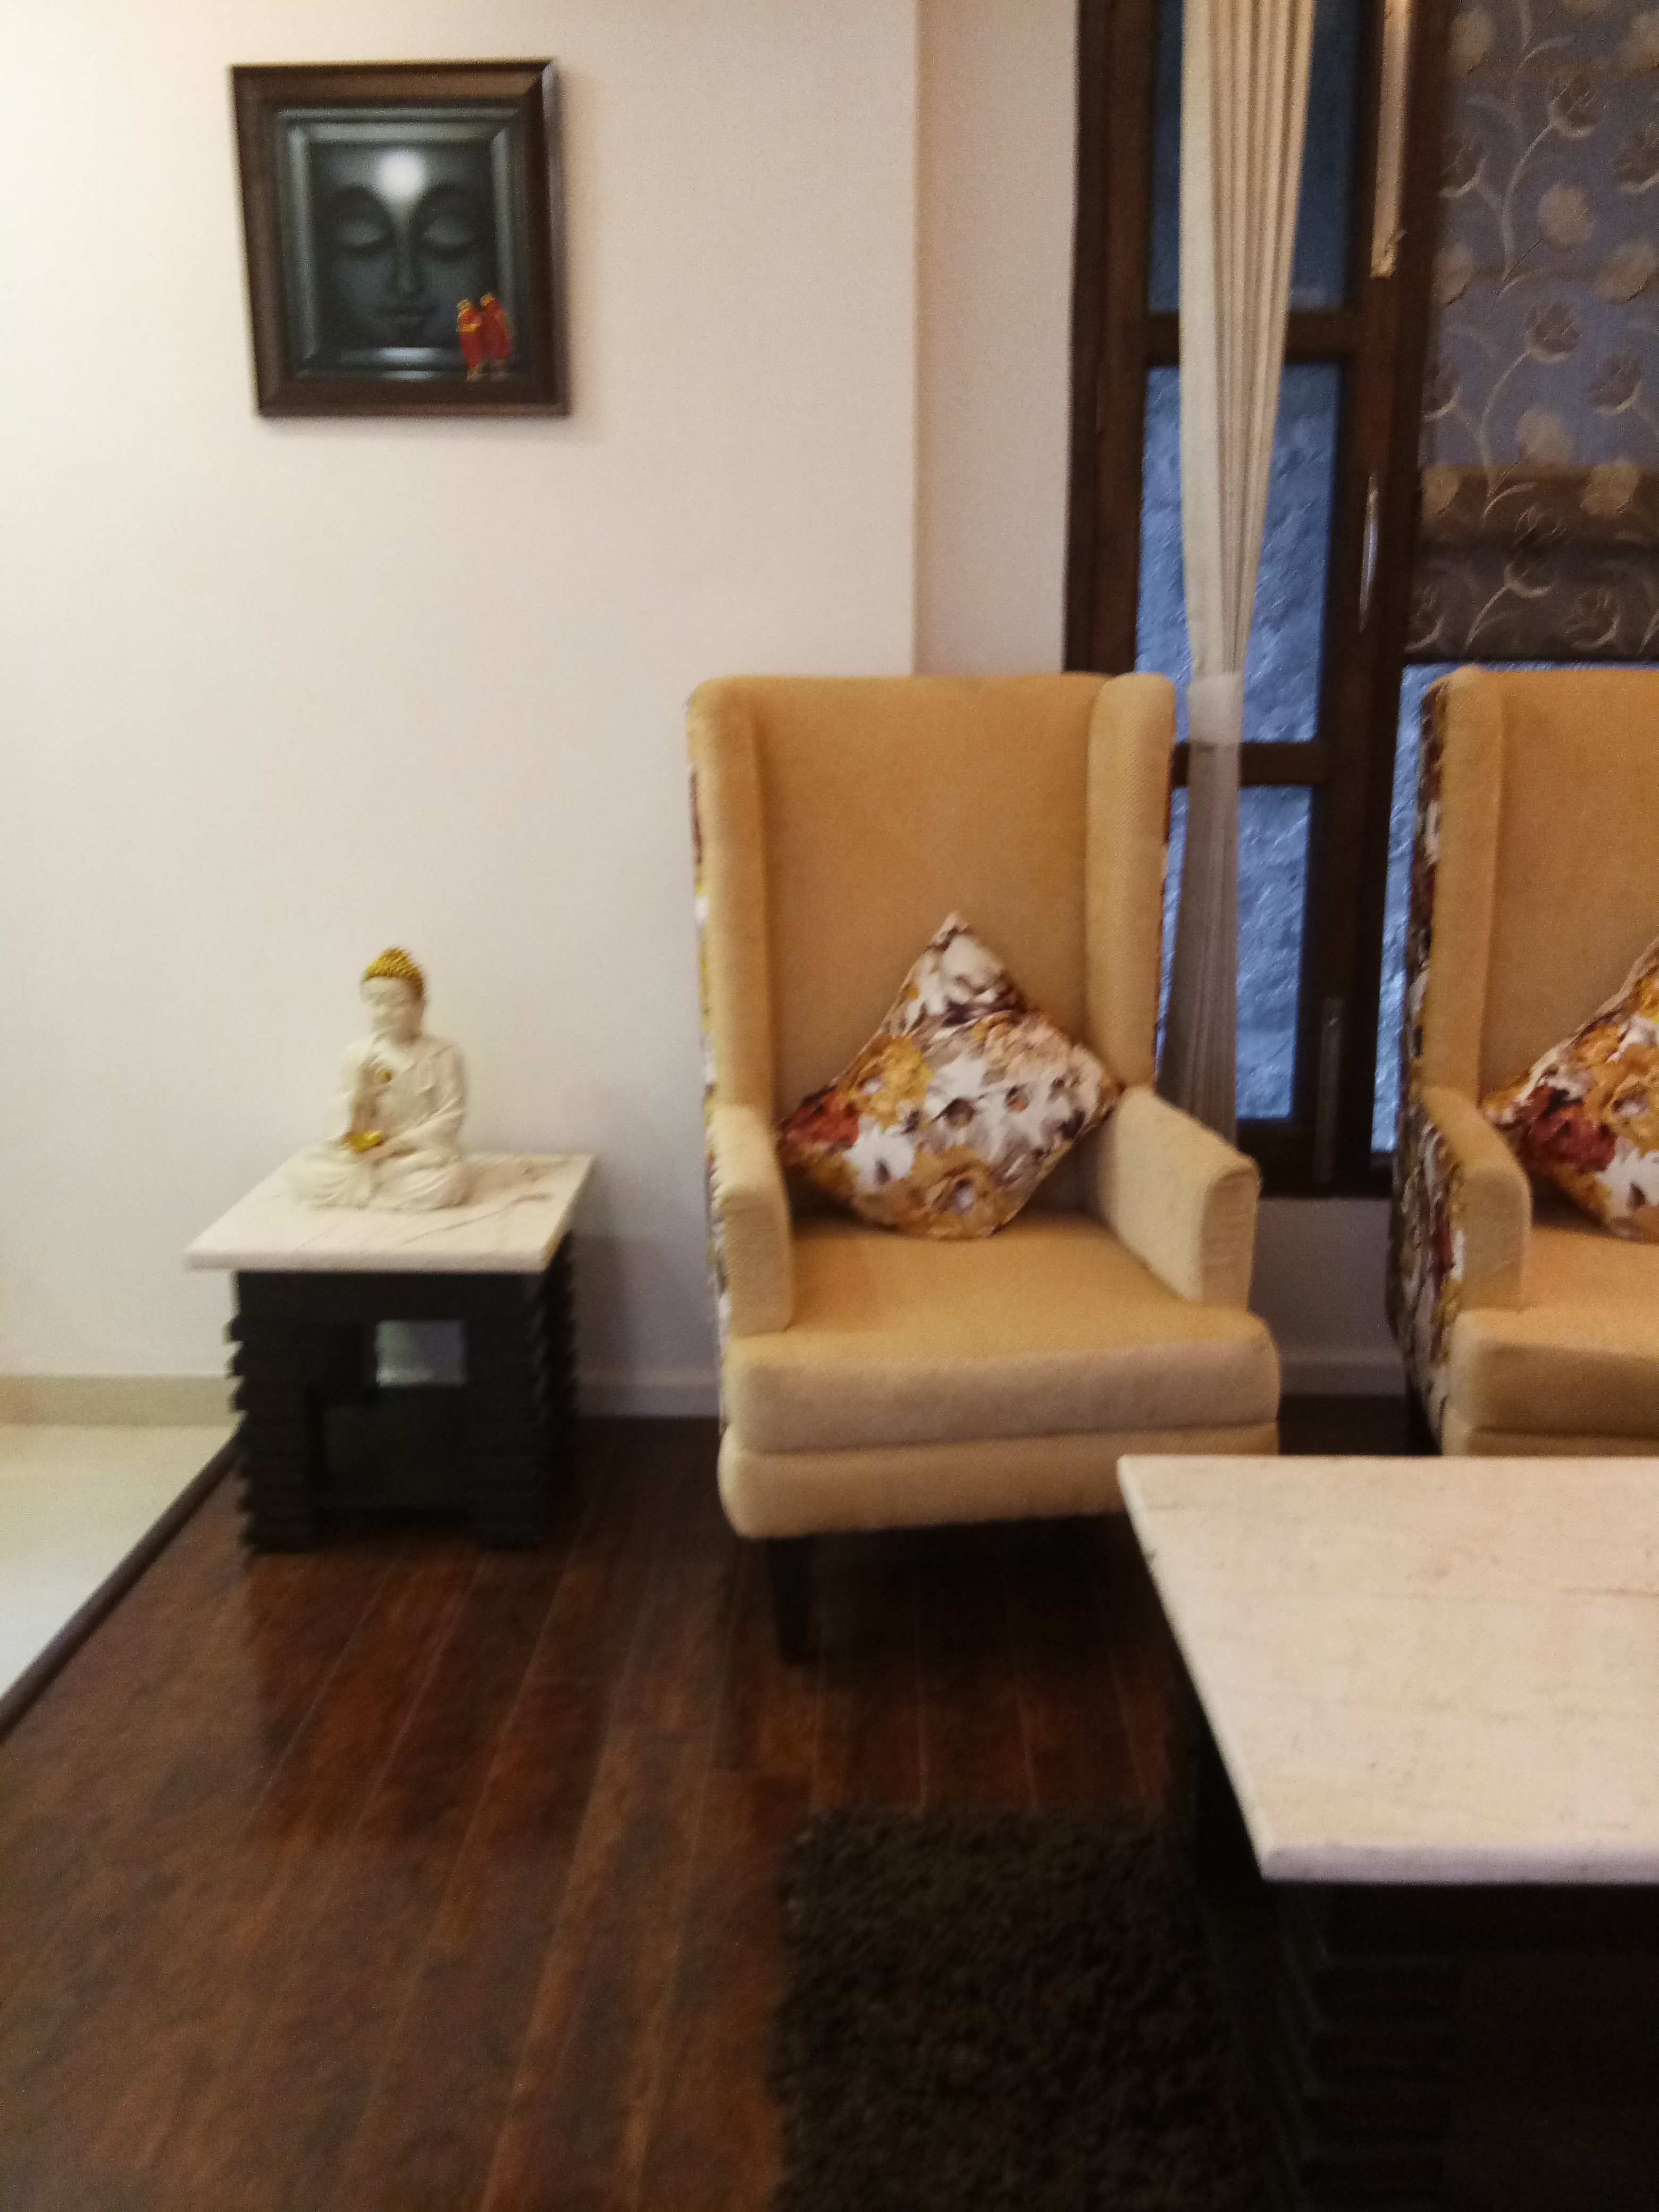 2 Bhk Fully furnished Luxury Apartment for sale at Bharari shimla —- Covered area -960 sqf — Ready to Move — Close to School and local bus Stop —- Only 3 km from Mall road Shimla.